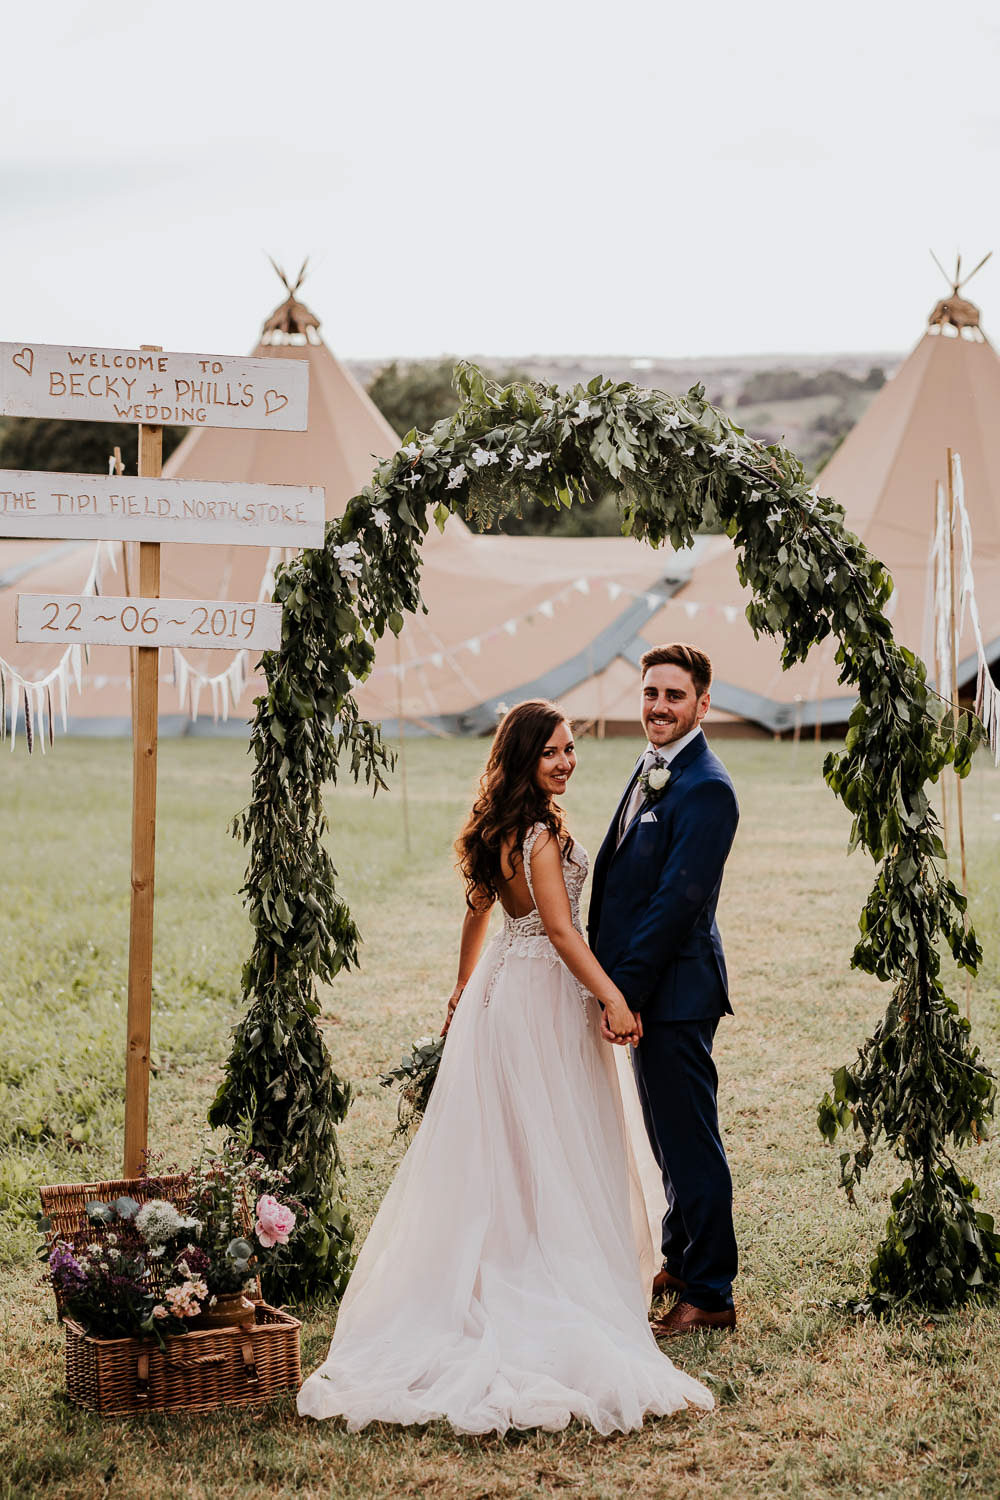 Village Tipi Wedding Ryan Goold Photography Greenery Foliage Arch Flower Sign Signs Signage SignPost